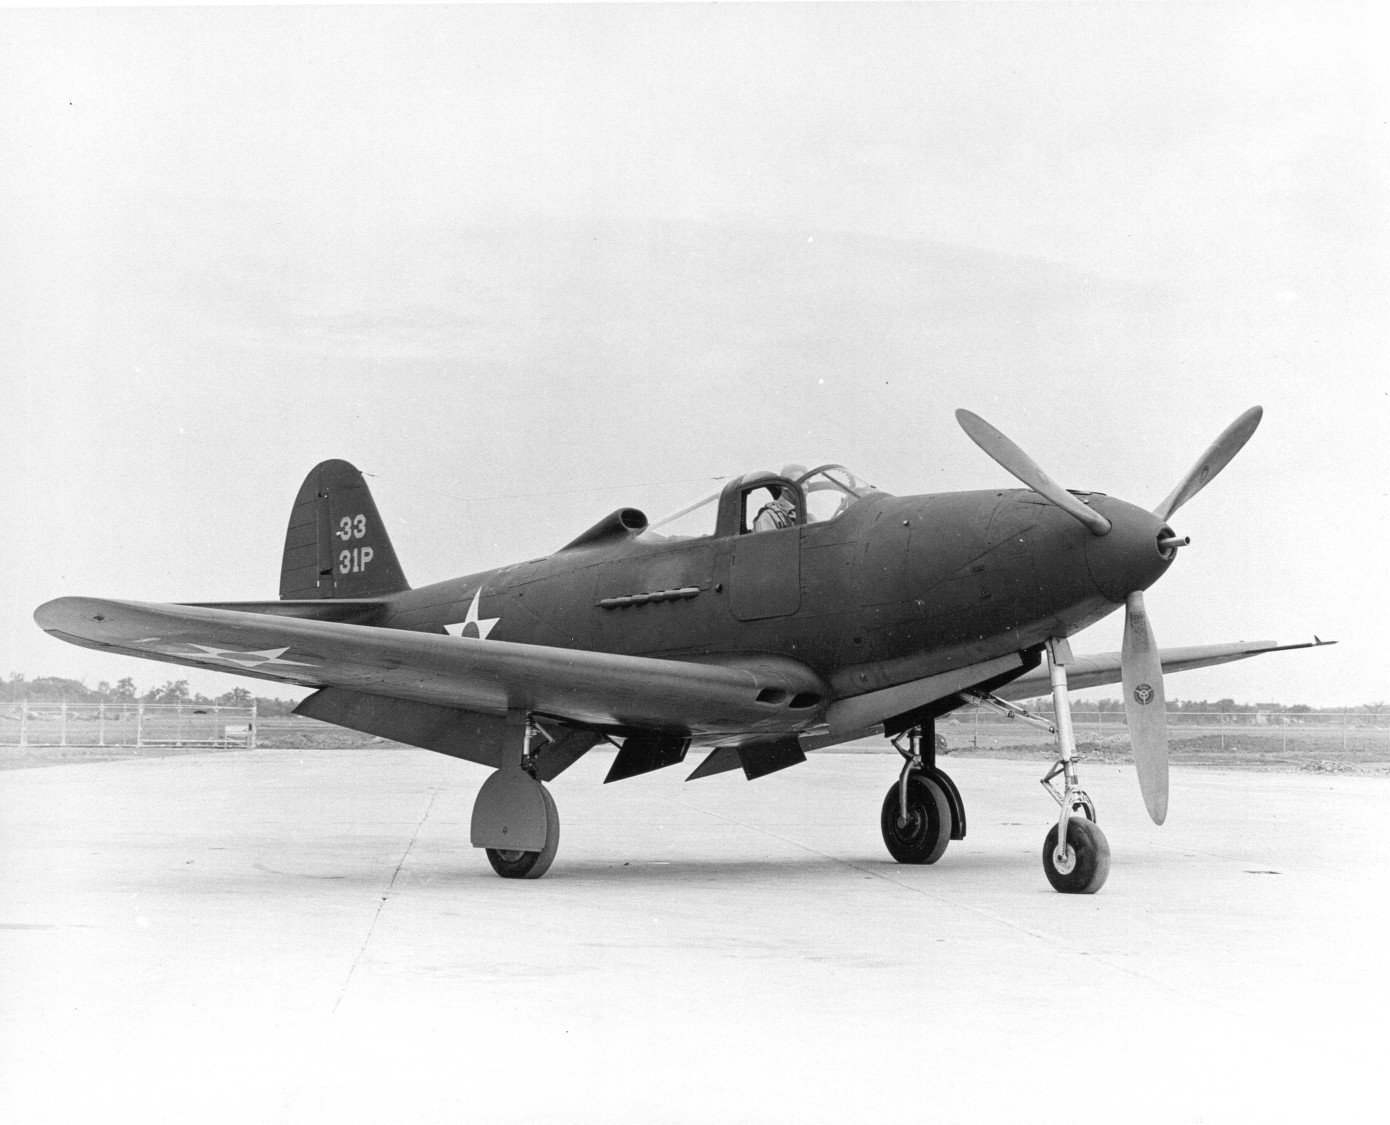 Bell P-39 Airacobra   Military Wiki   FANDOM powered by Wikia